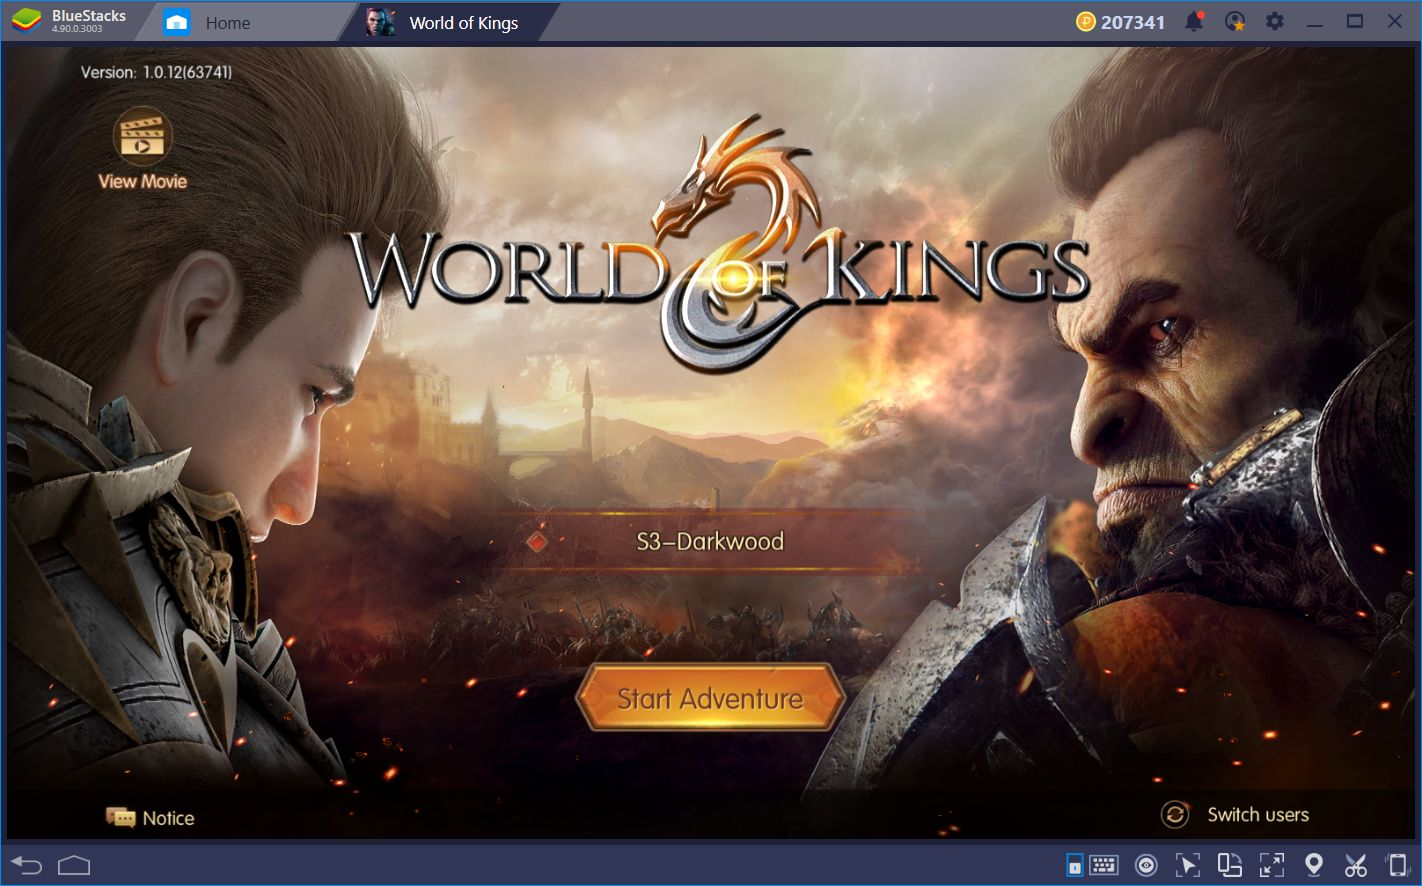 Cómo Empezar tu Aventura en World of Kings